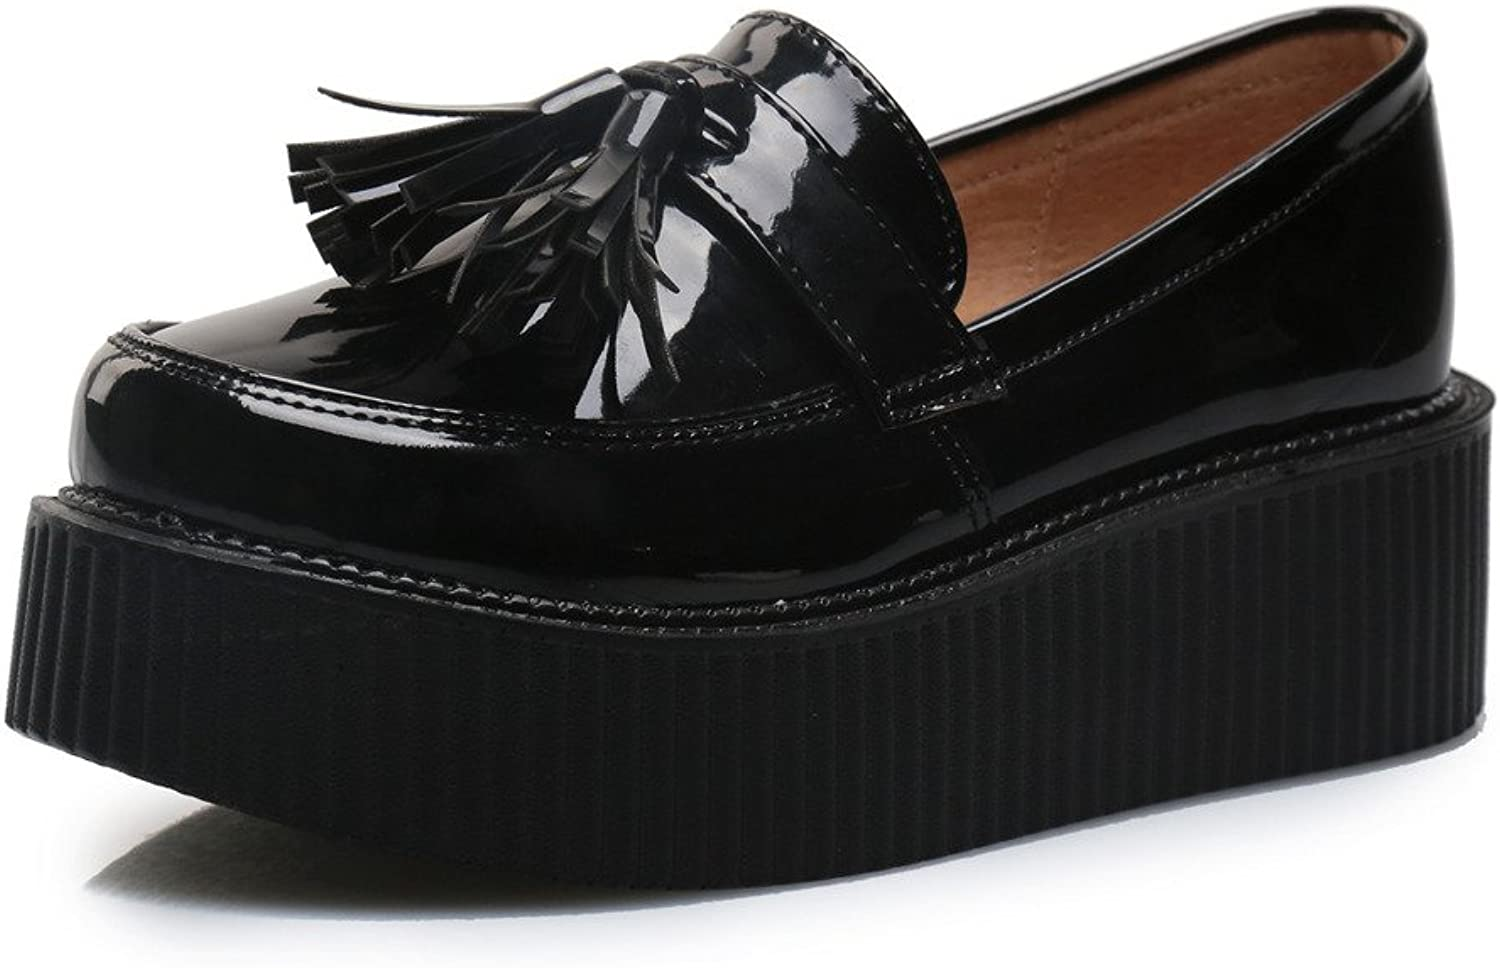 pinkG Women's Cute Bowknot Flats Platform Loafers Moccasin Goth Punk Creepers shoes